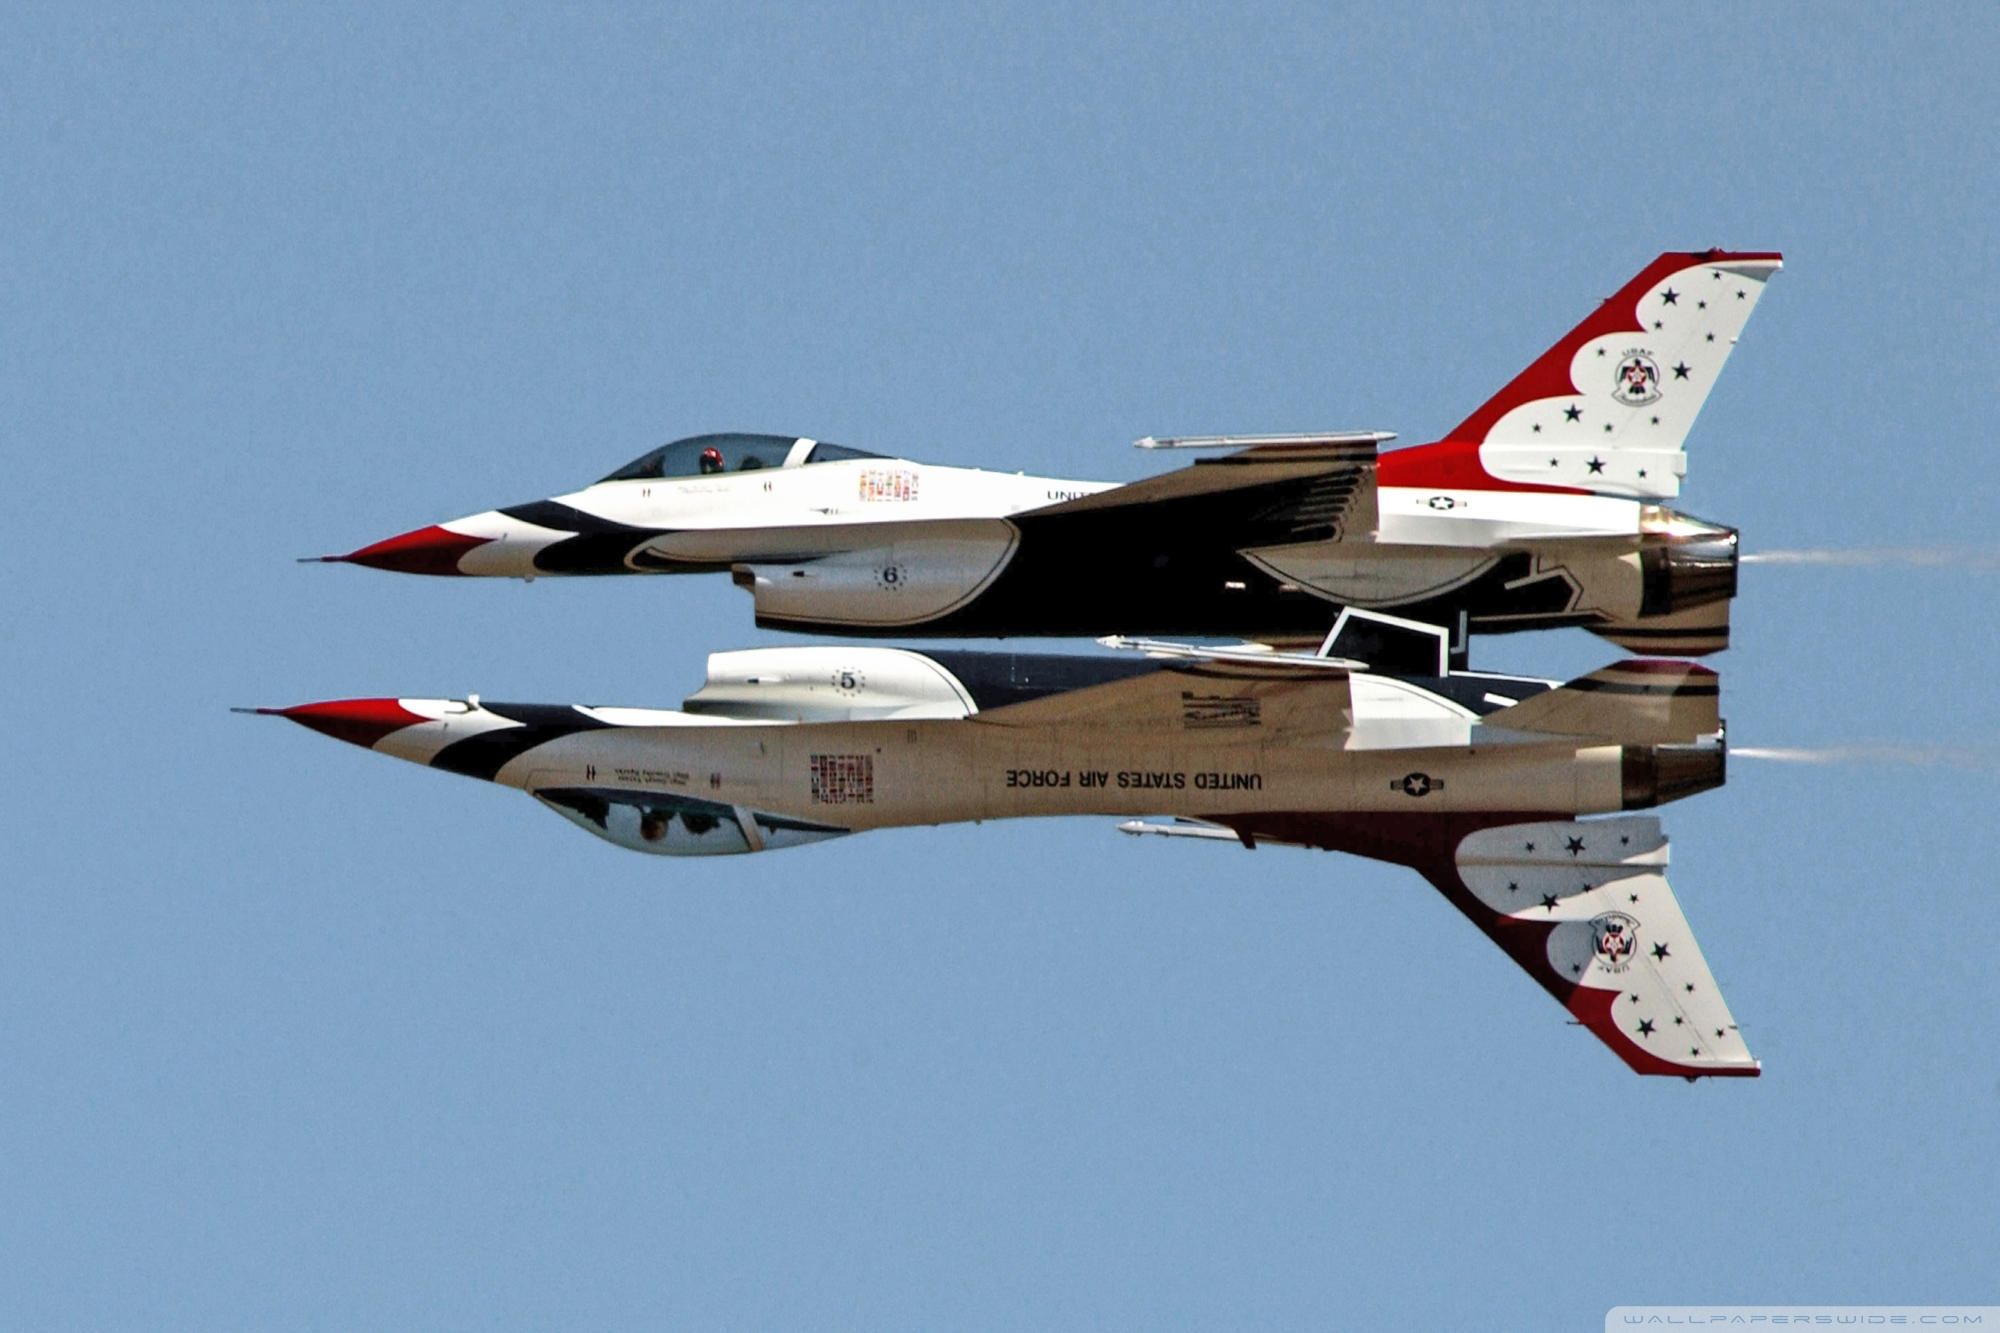 Download Usaf Thunderbirds F16 Fighting Falcons Free Wallpaper Download